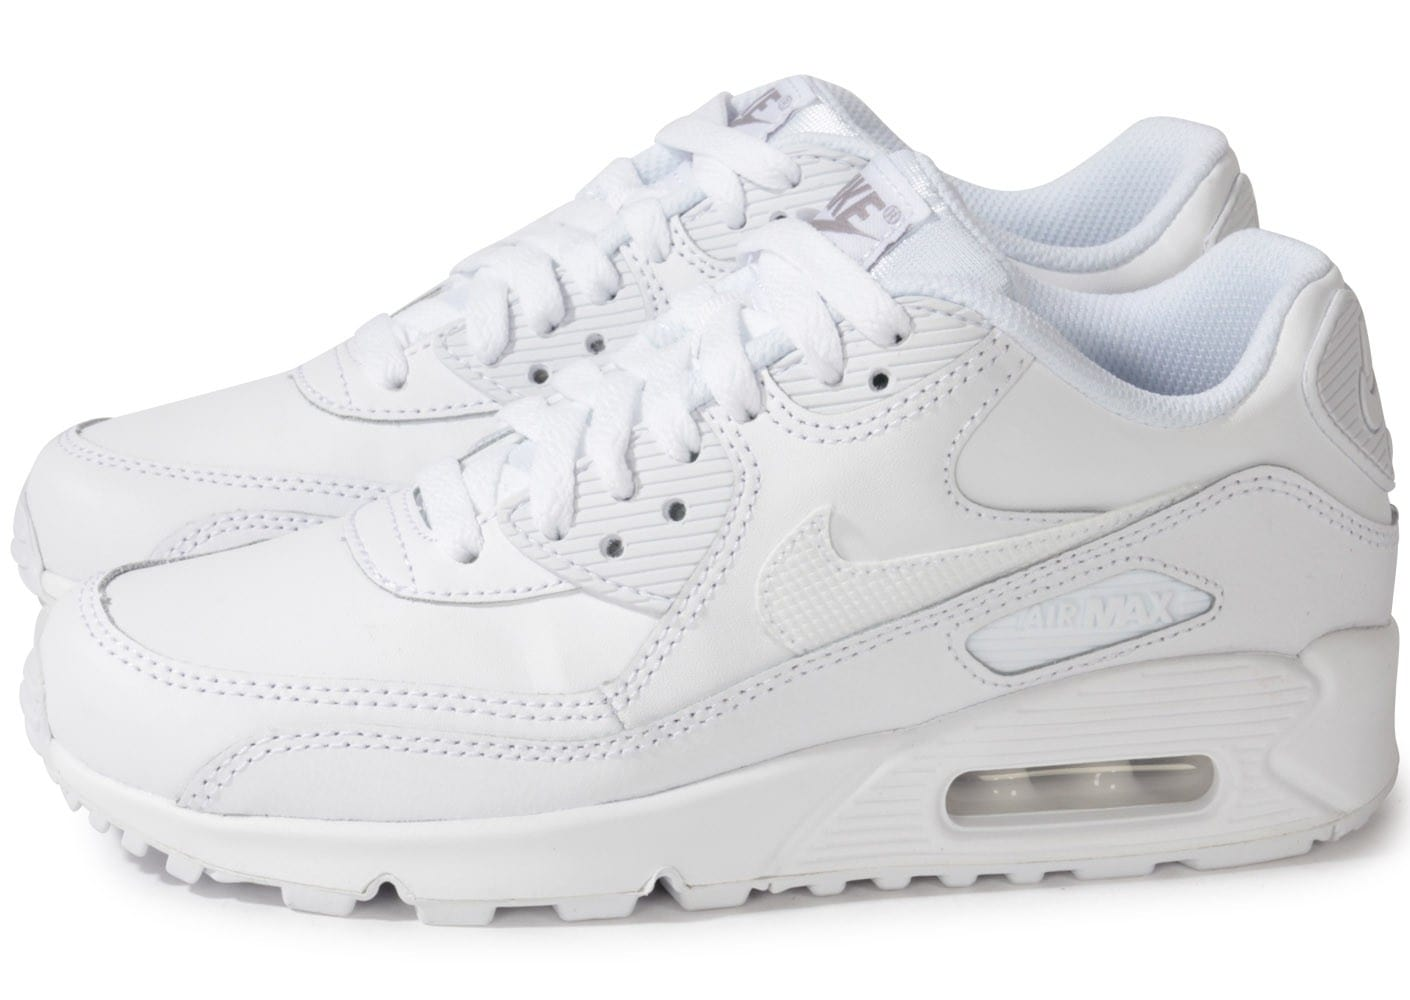 separation shoes bb67d ce268 oQ2kJig air max 90 nike EYAI blanc femme CY6Rnxdwq